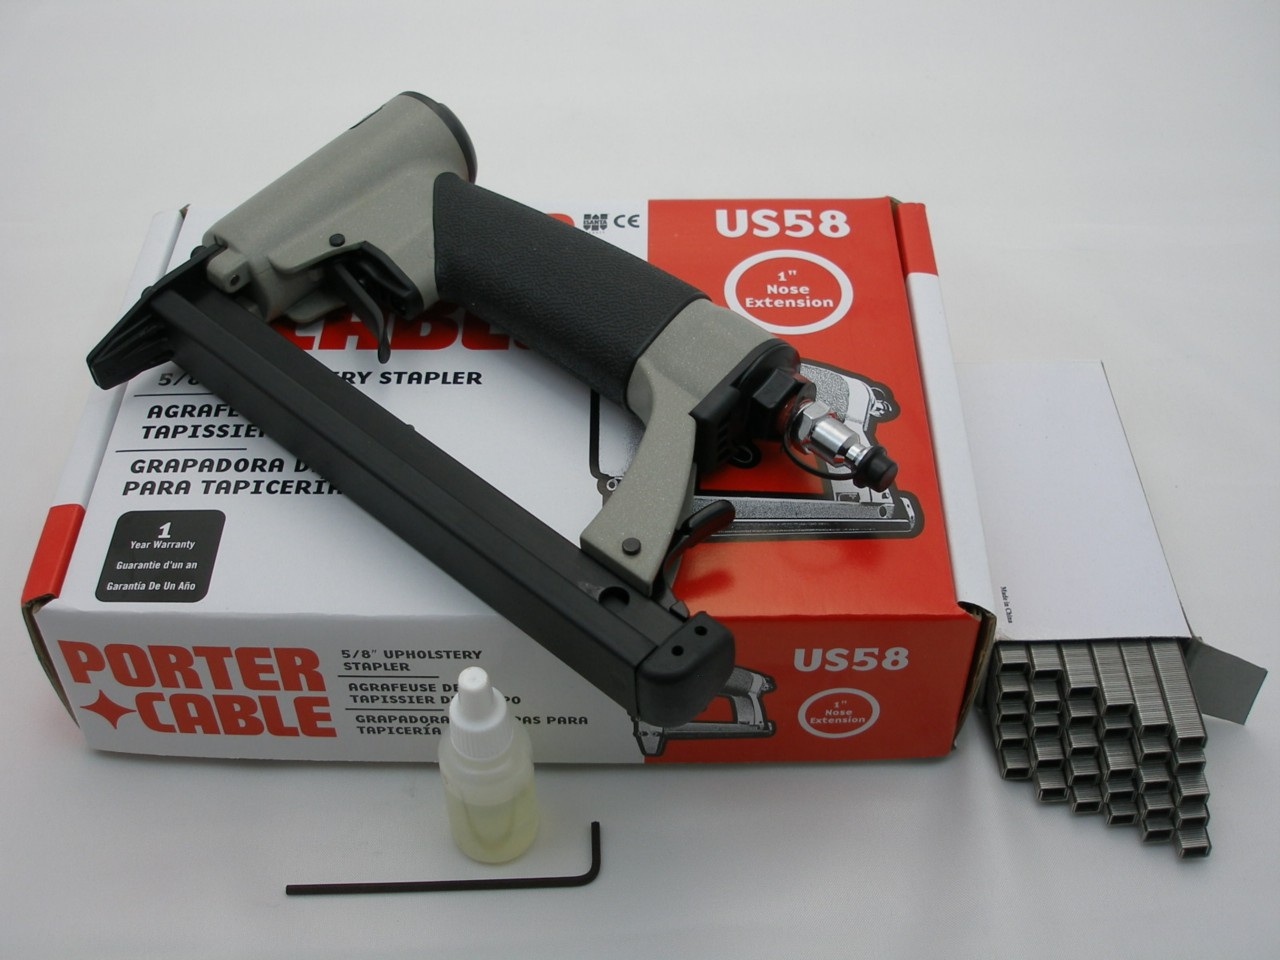 Porter Cable US58 Upholstery Staple Gun Inc Staples | eBay